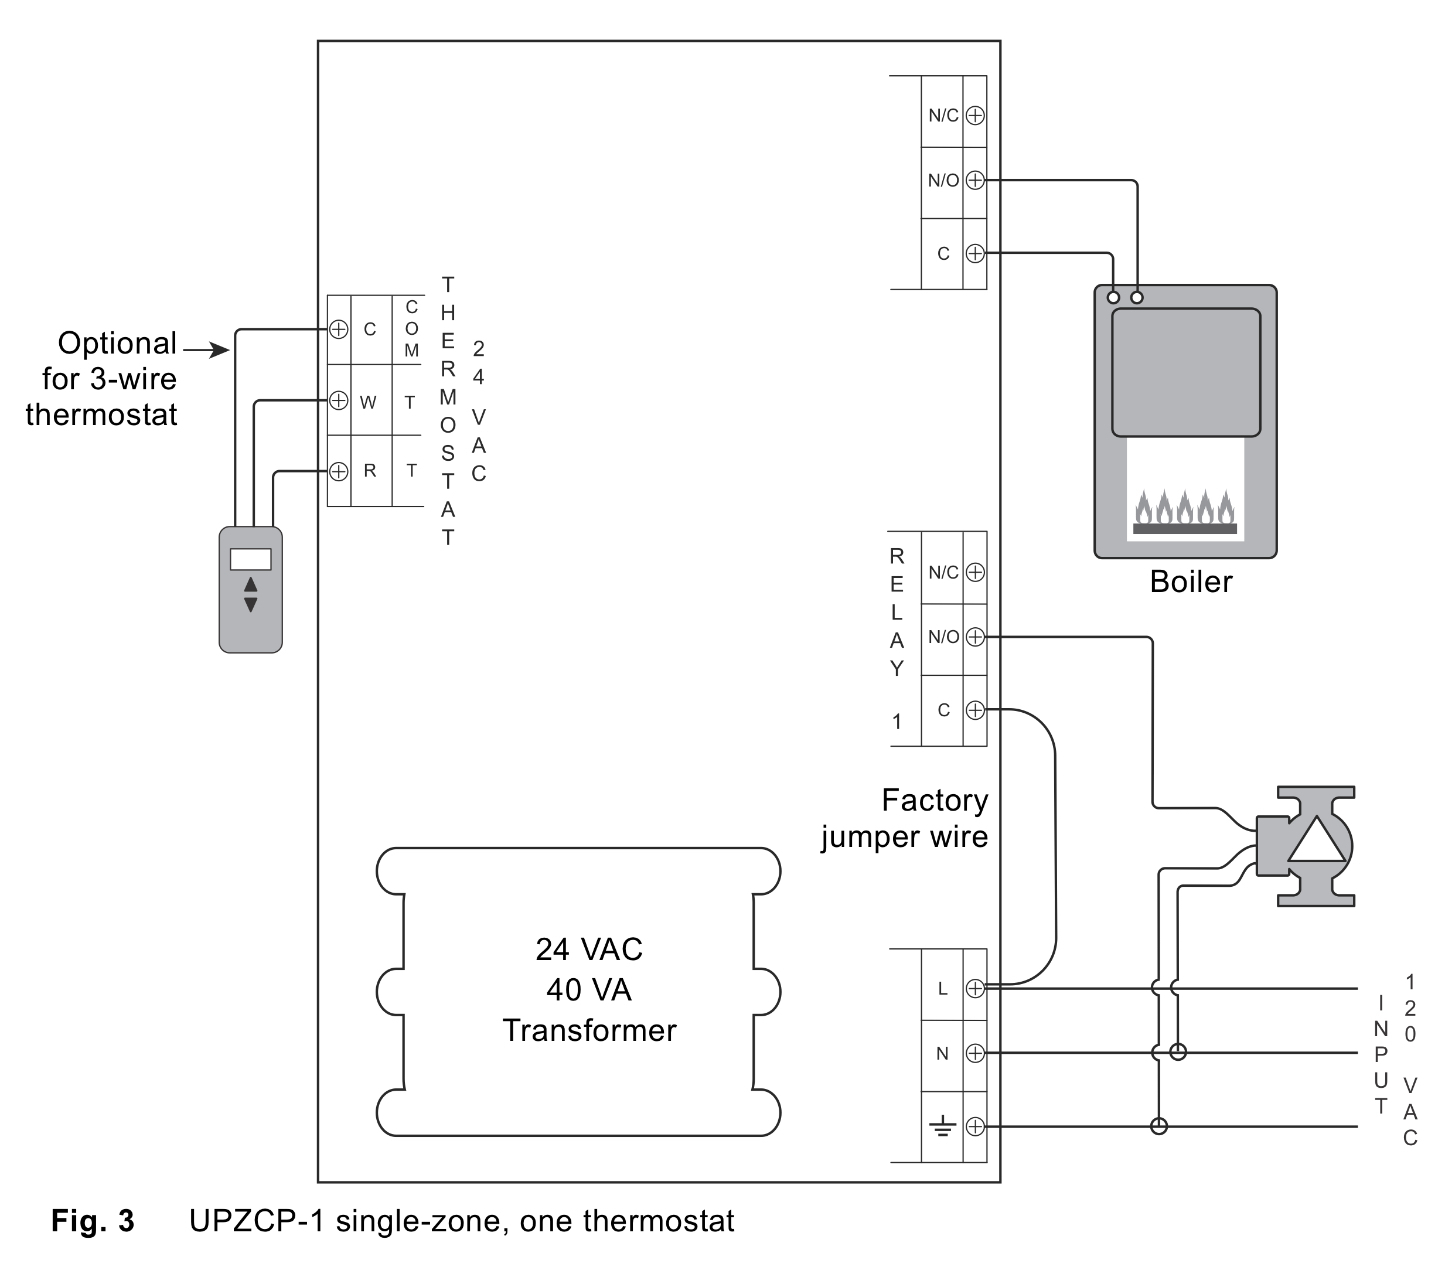 taco 007 f5 wiring diagram Download-taco 007 f5 wiring diagram Collection How Can I Add Additional Circulator Relay To Existing 11-t